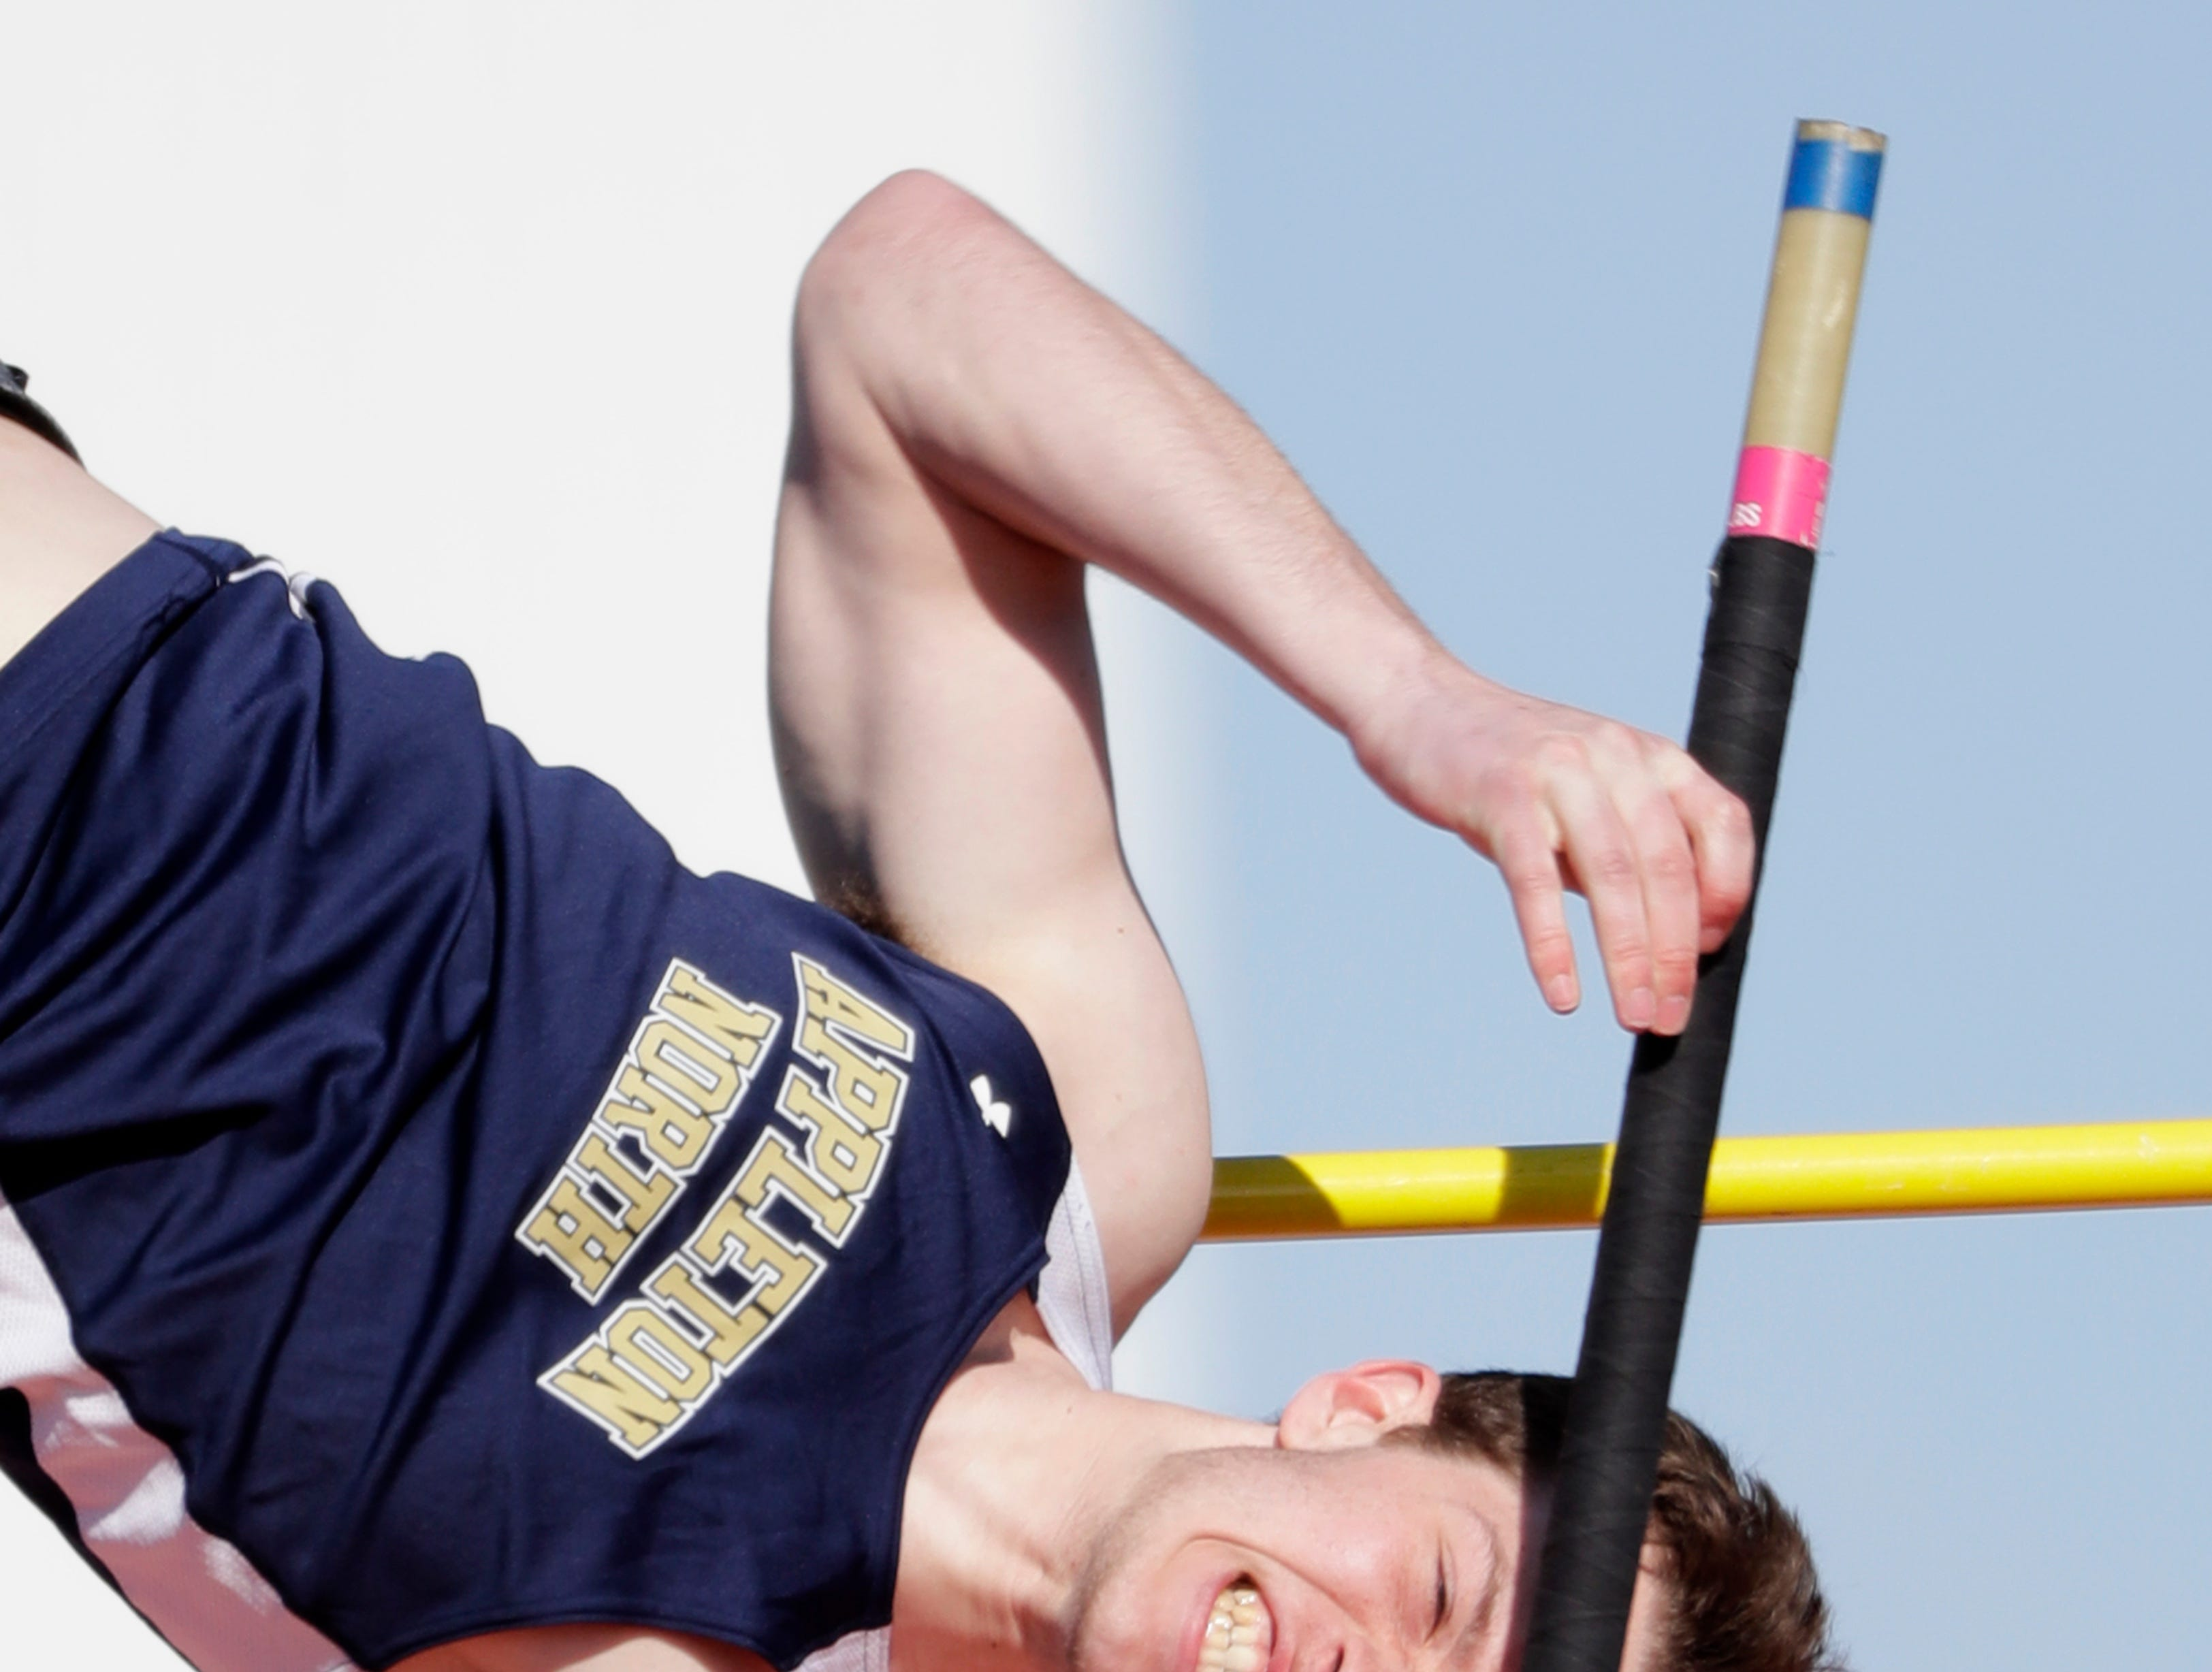 Appleton North High School's Tayte Cvancara competes in the pole vault event during the Neenah co-ed invitational track and field meet Friday, April 26, 2019, at Neenah High School in Neenah, Wis. 